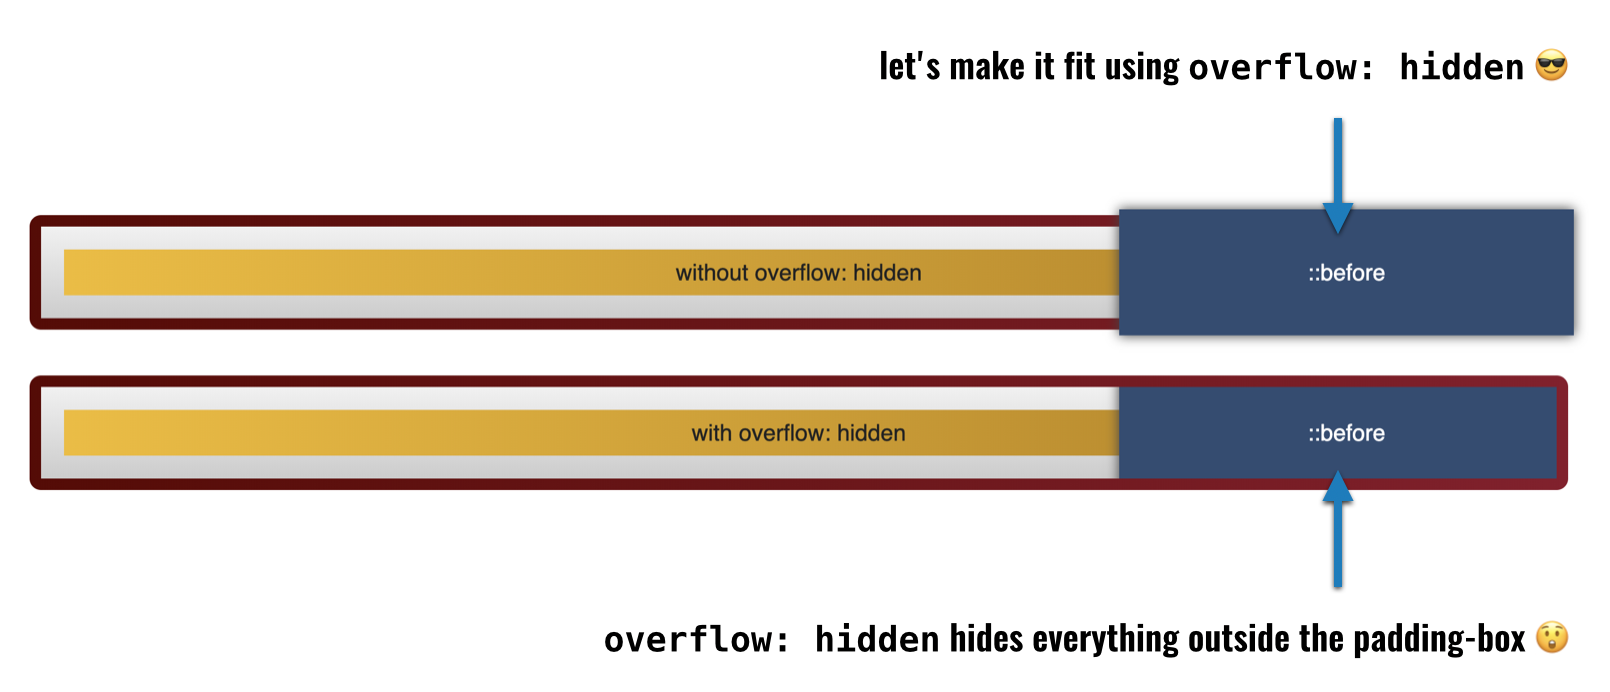 overflow hidden only hides elements going over the padding-box